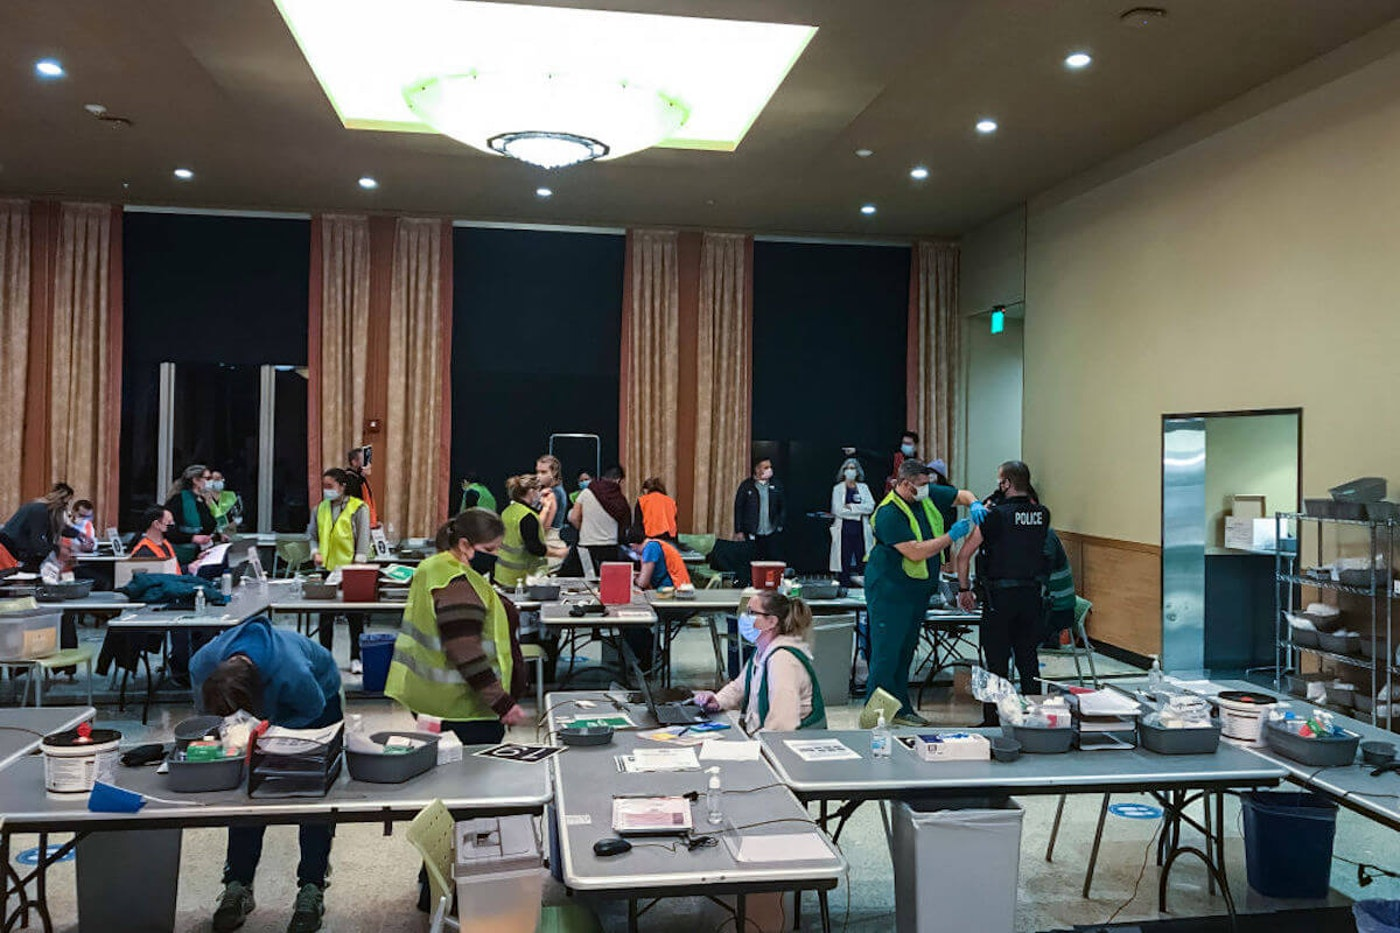 Healthcare workers in protective equipment administer vaccines to patients in a conference room with folding tables. It is after sunset.